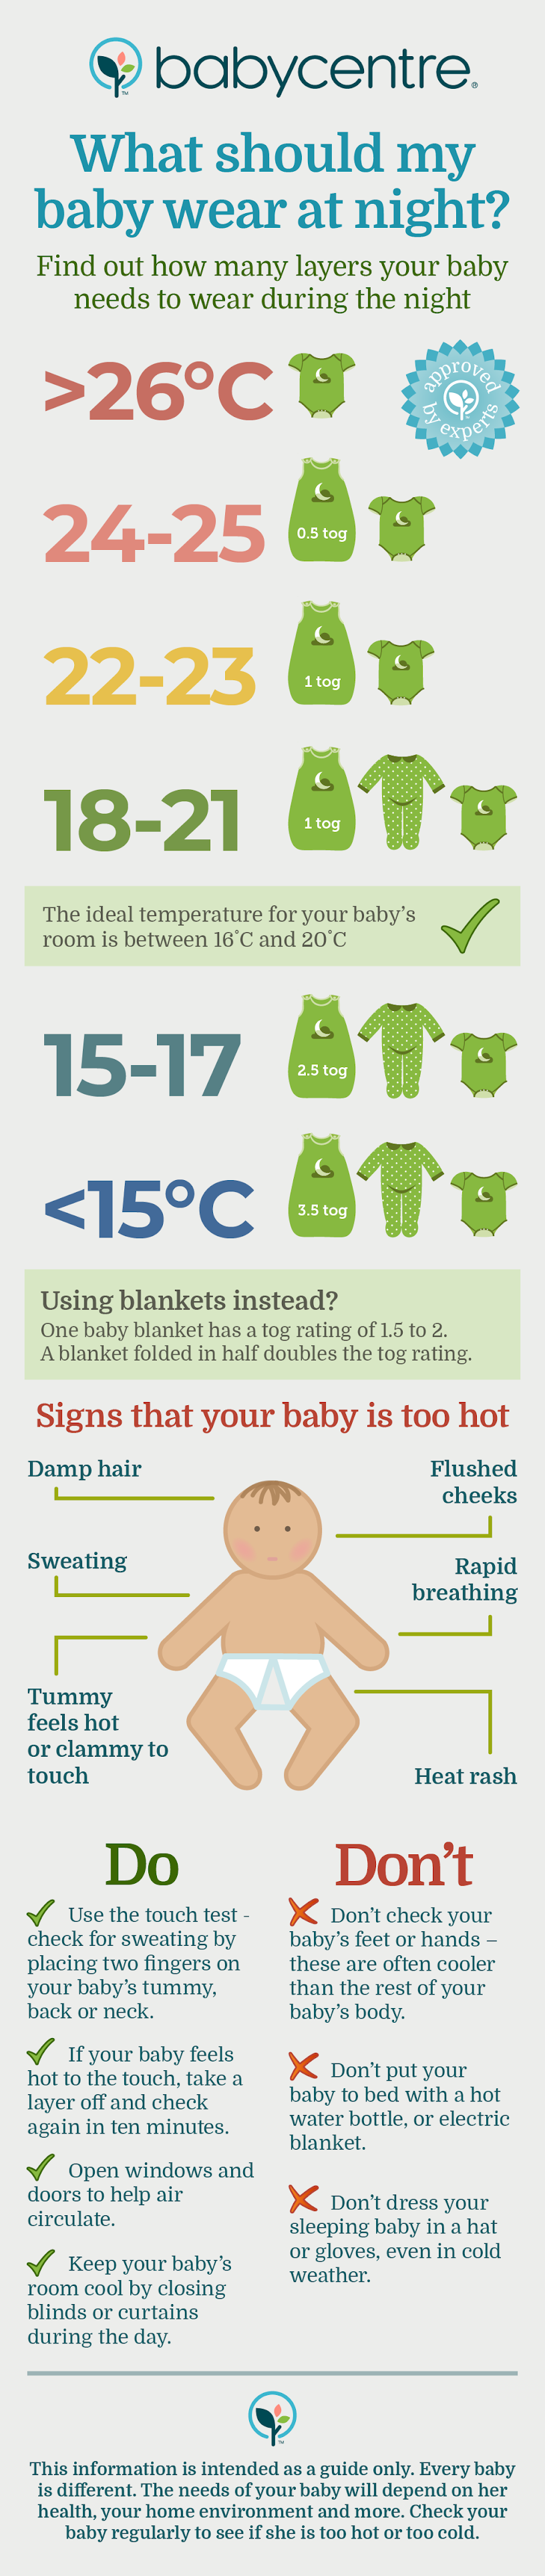 What should my baby wear at night? #infographic